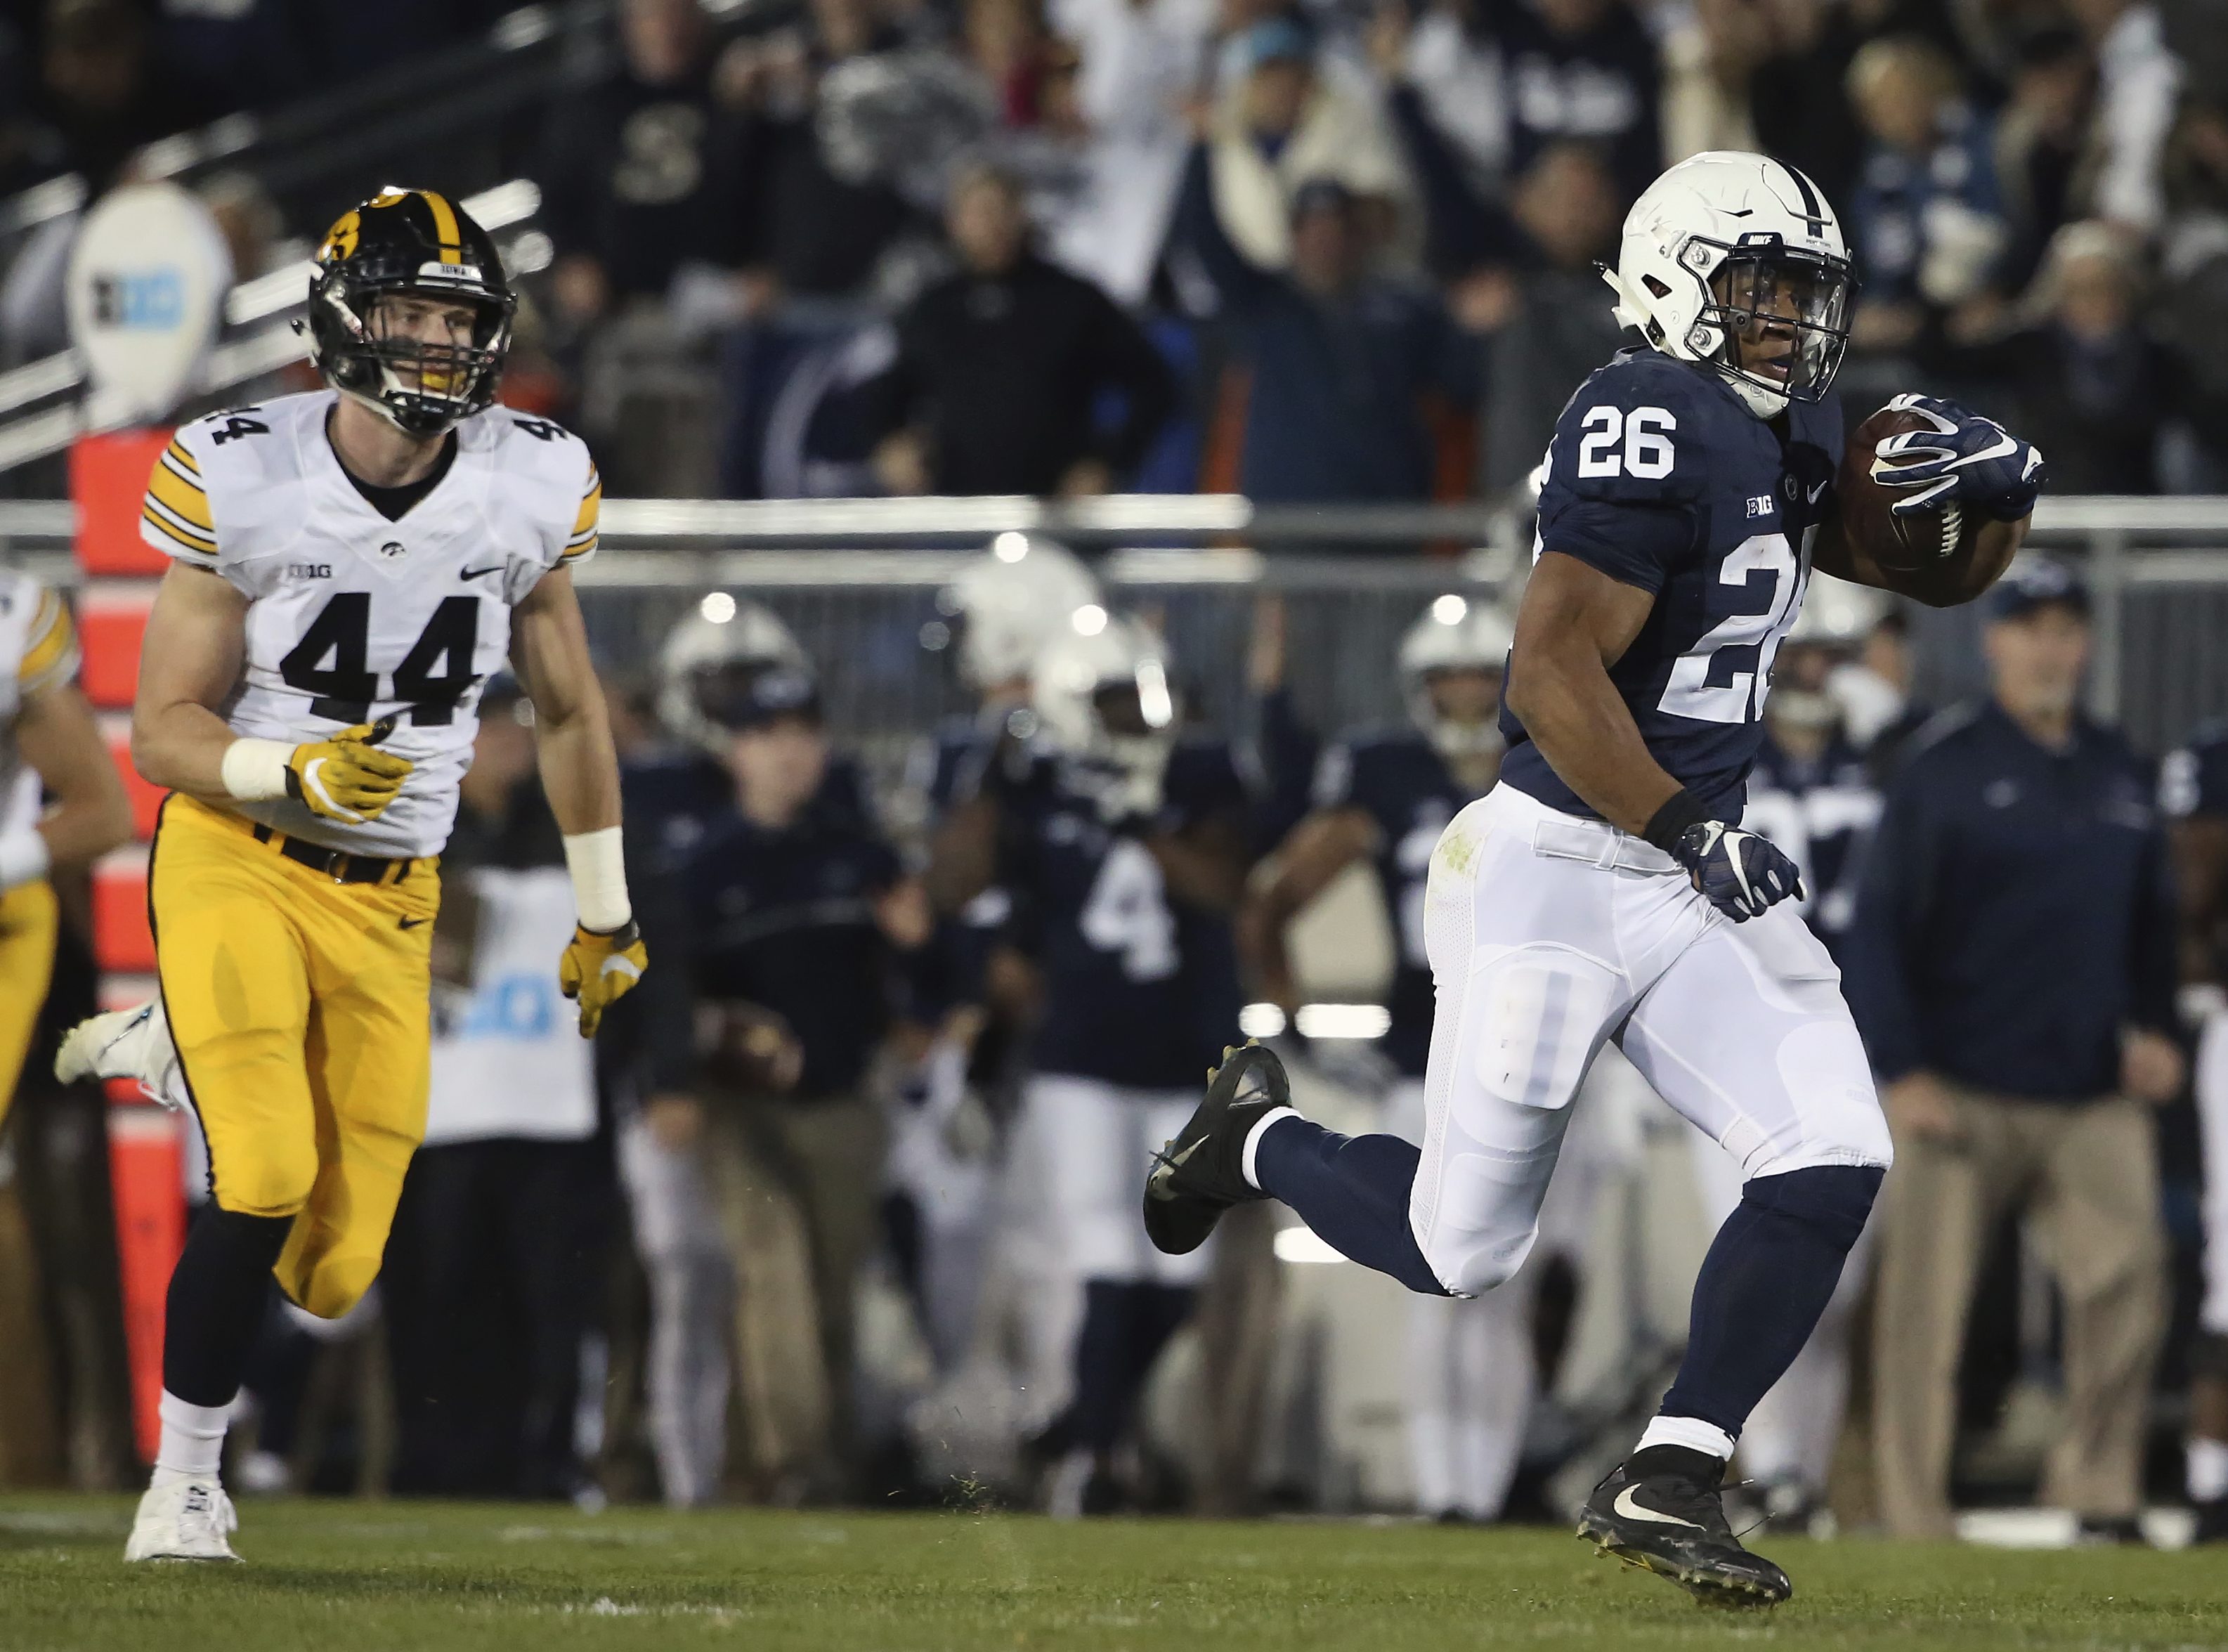 Penn State's Saquon Barkley (26) races to the end zone for a touchdown against Iowa during the first half of an NCAA college football game in State College, Pa., Saturday, Nov. 5, 2016. (AP Photo/Chris Knight)